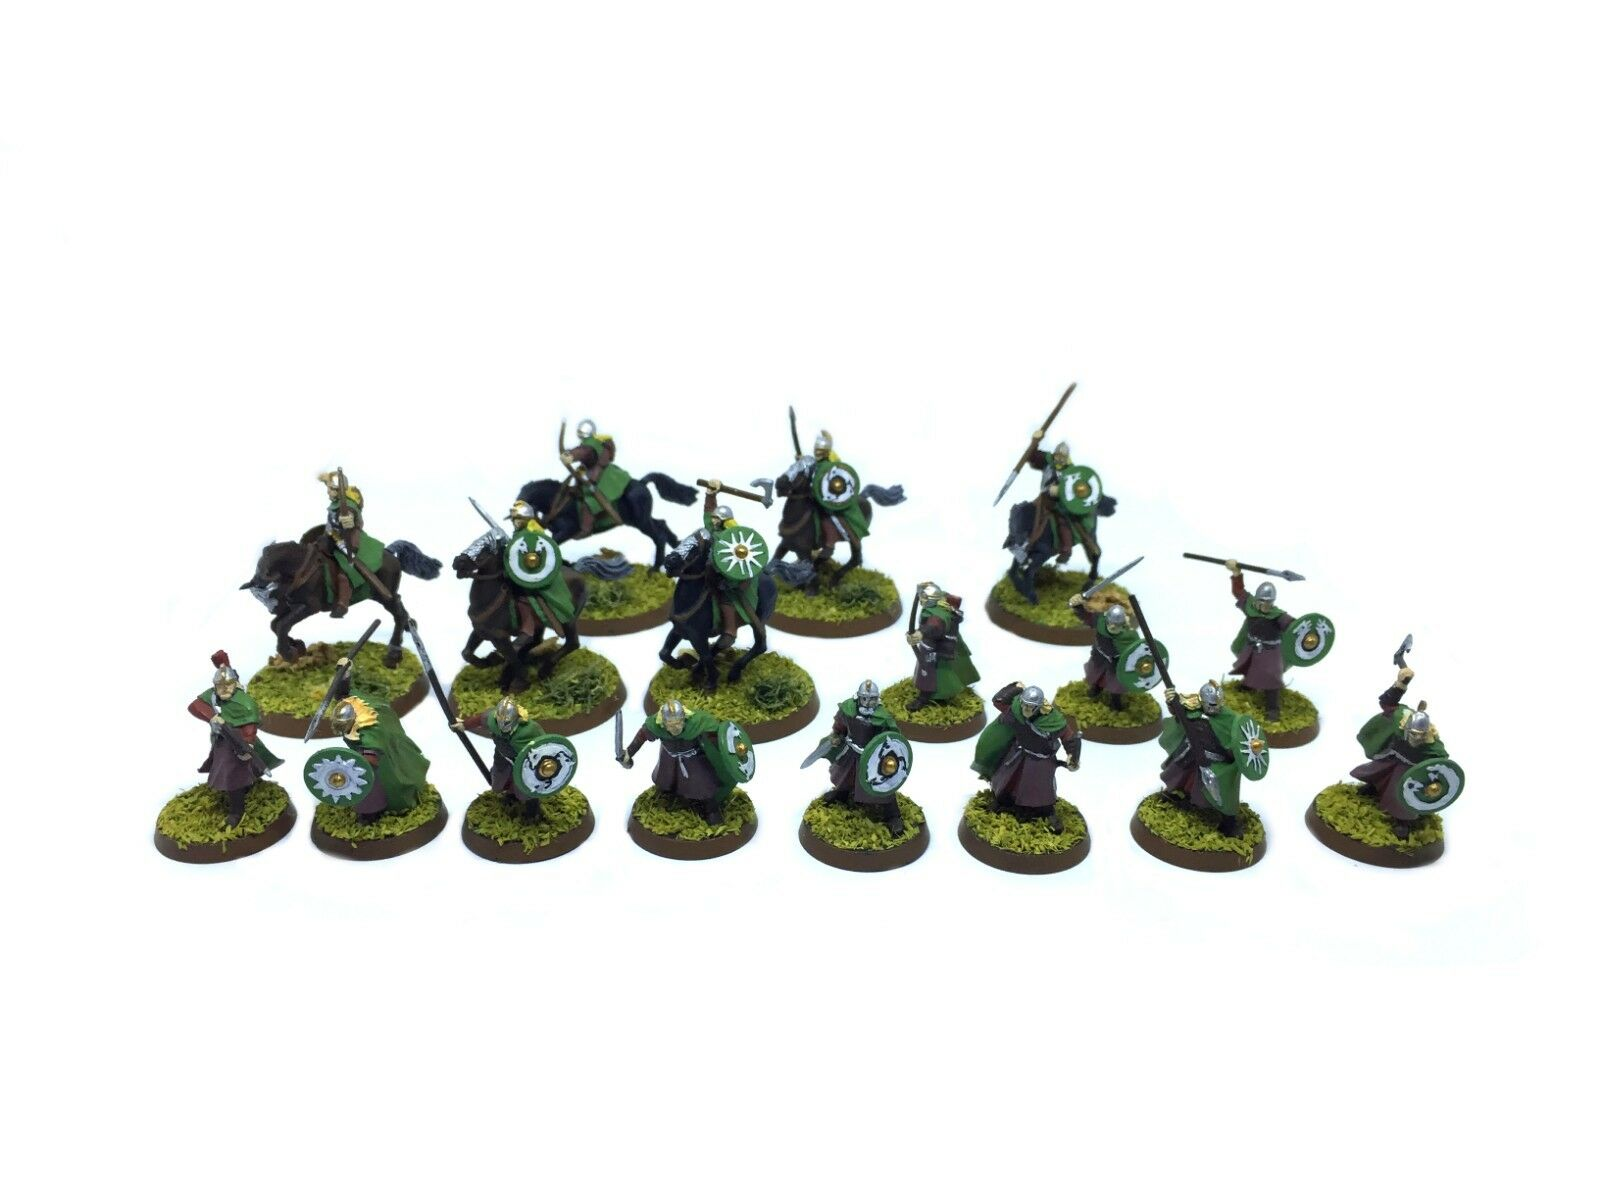 The lord of of of the rings - Rohan Army (painted) - 1 3 32in 25879b